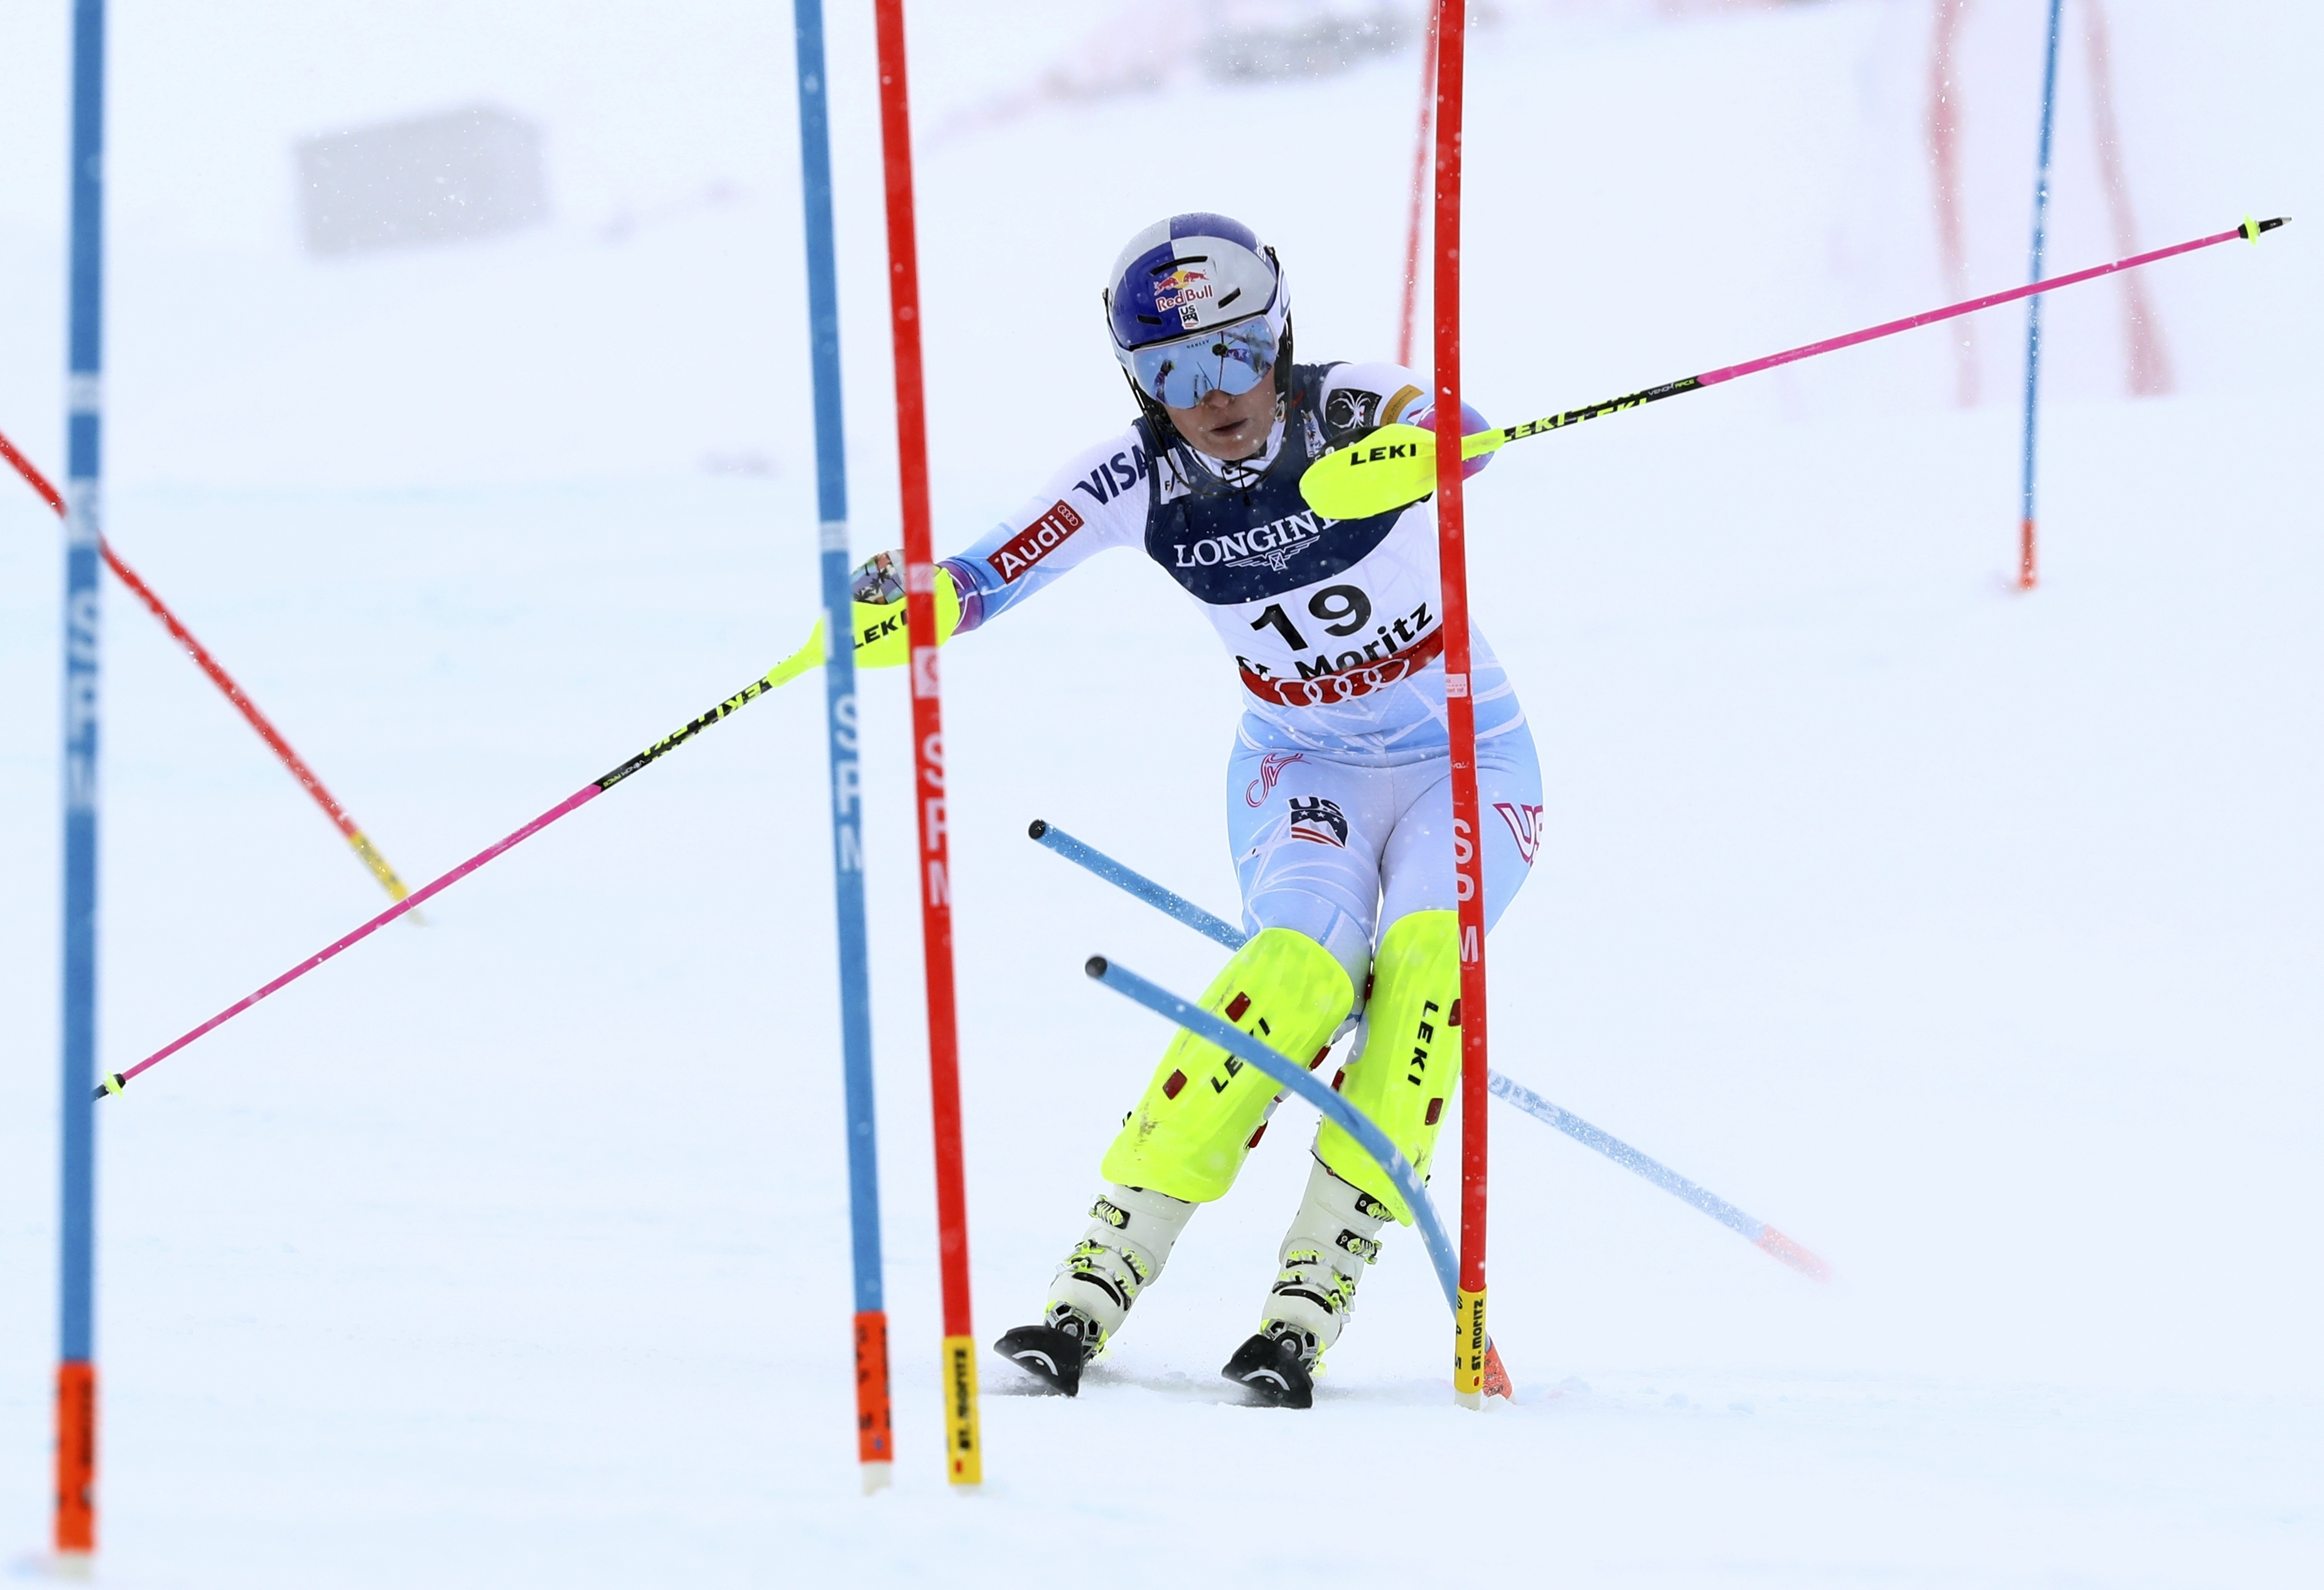 United States's Lindsey Vonn clears a pole during a women's combined event, at the alpine ski World Championships, in St. Moritz, Switzerland, Friday, Feb. 10, 2017. (AP Photo/Alessandro Trovati)